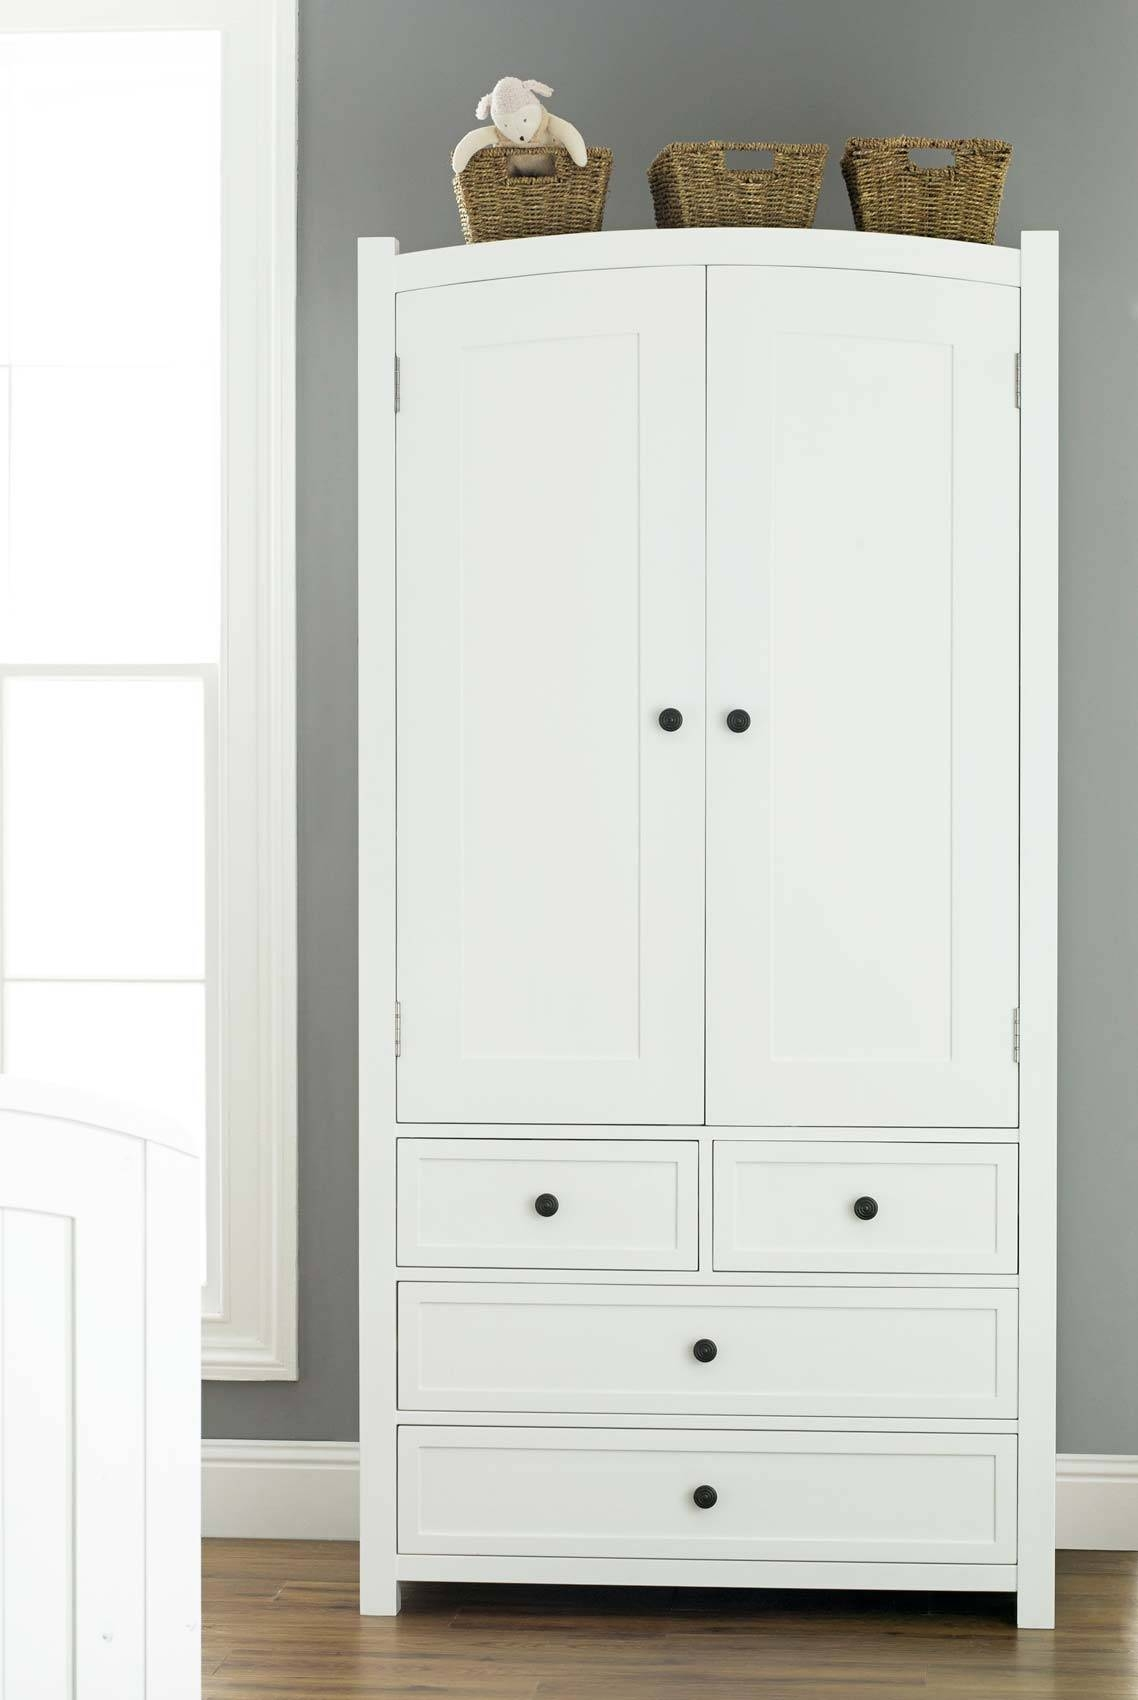 Flawless White Wooden Kids Wardrobe With Drawers And Brown Wicker within Single Wardrobe With Drawers And Shelves (Image 15 of 30)